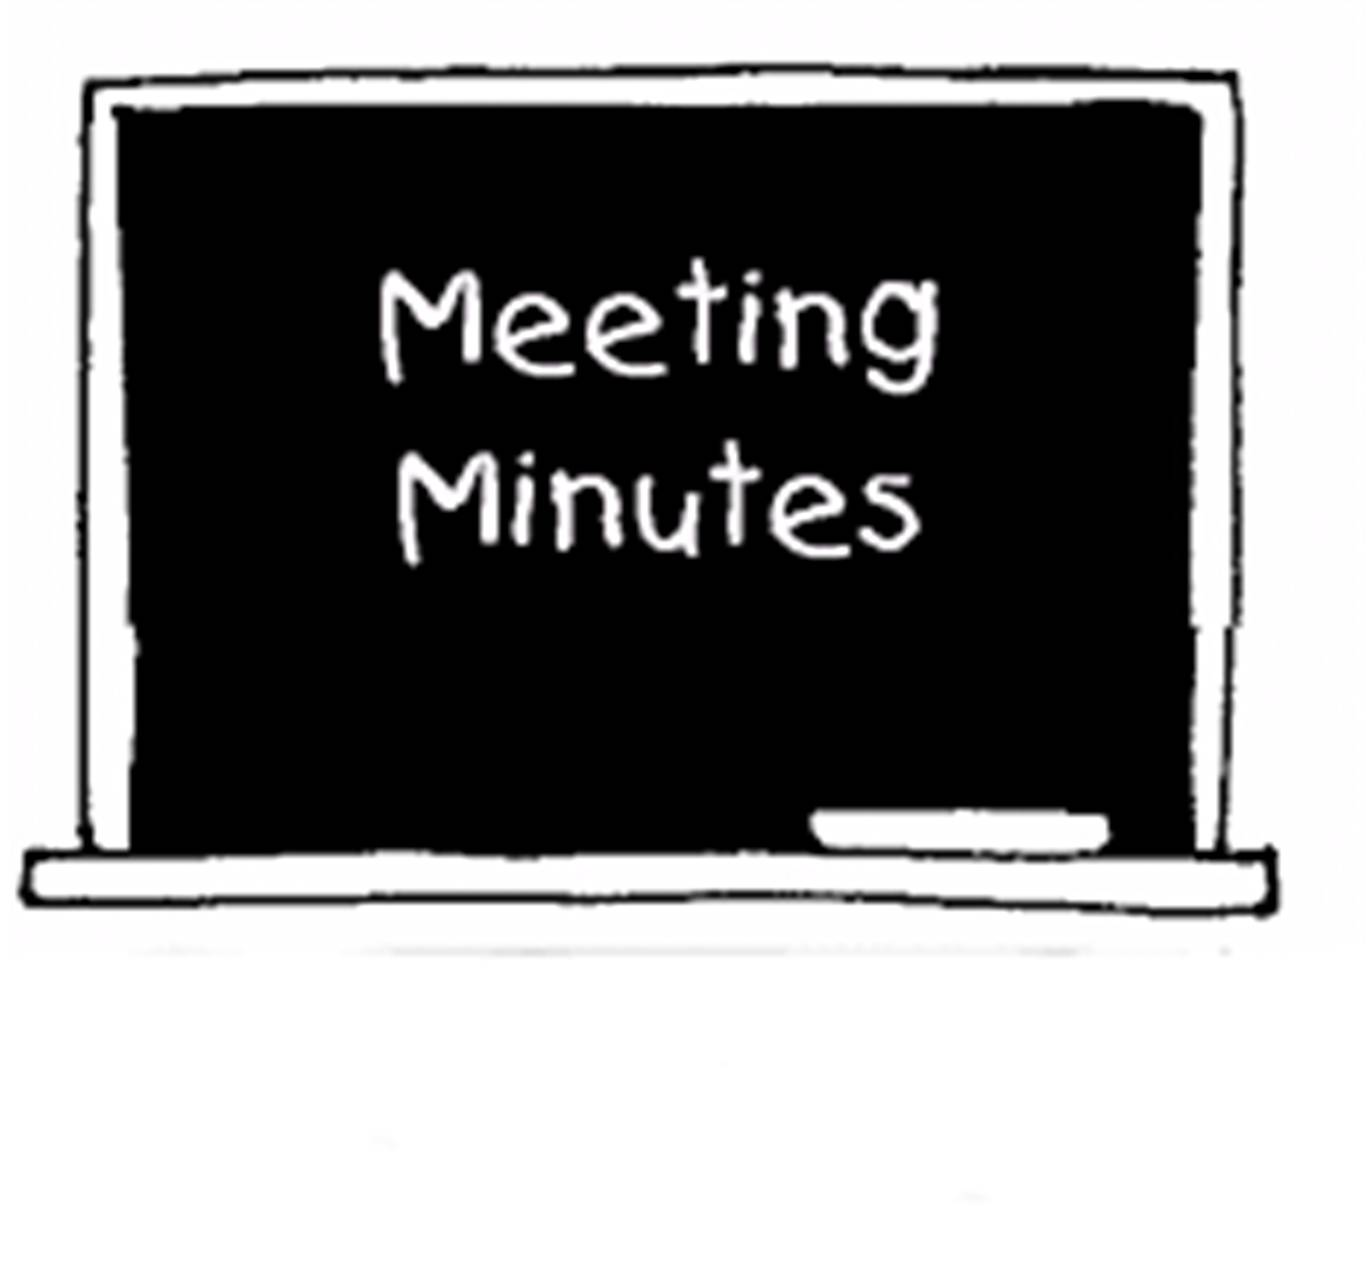 MAY 2020 GA CSC Meeting Minutes